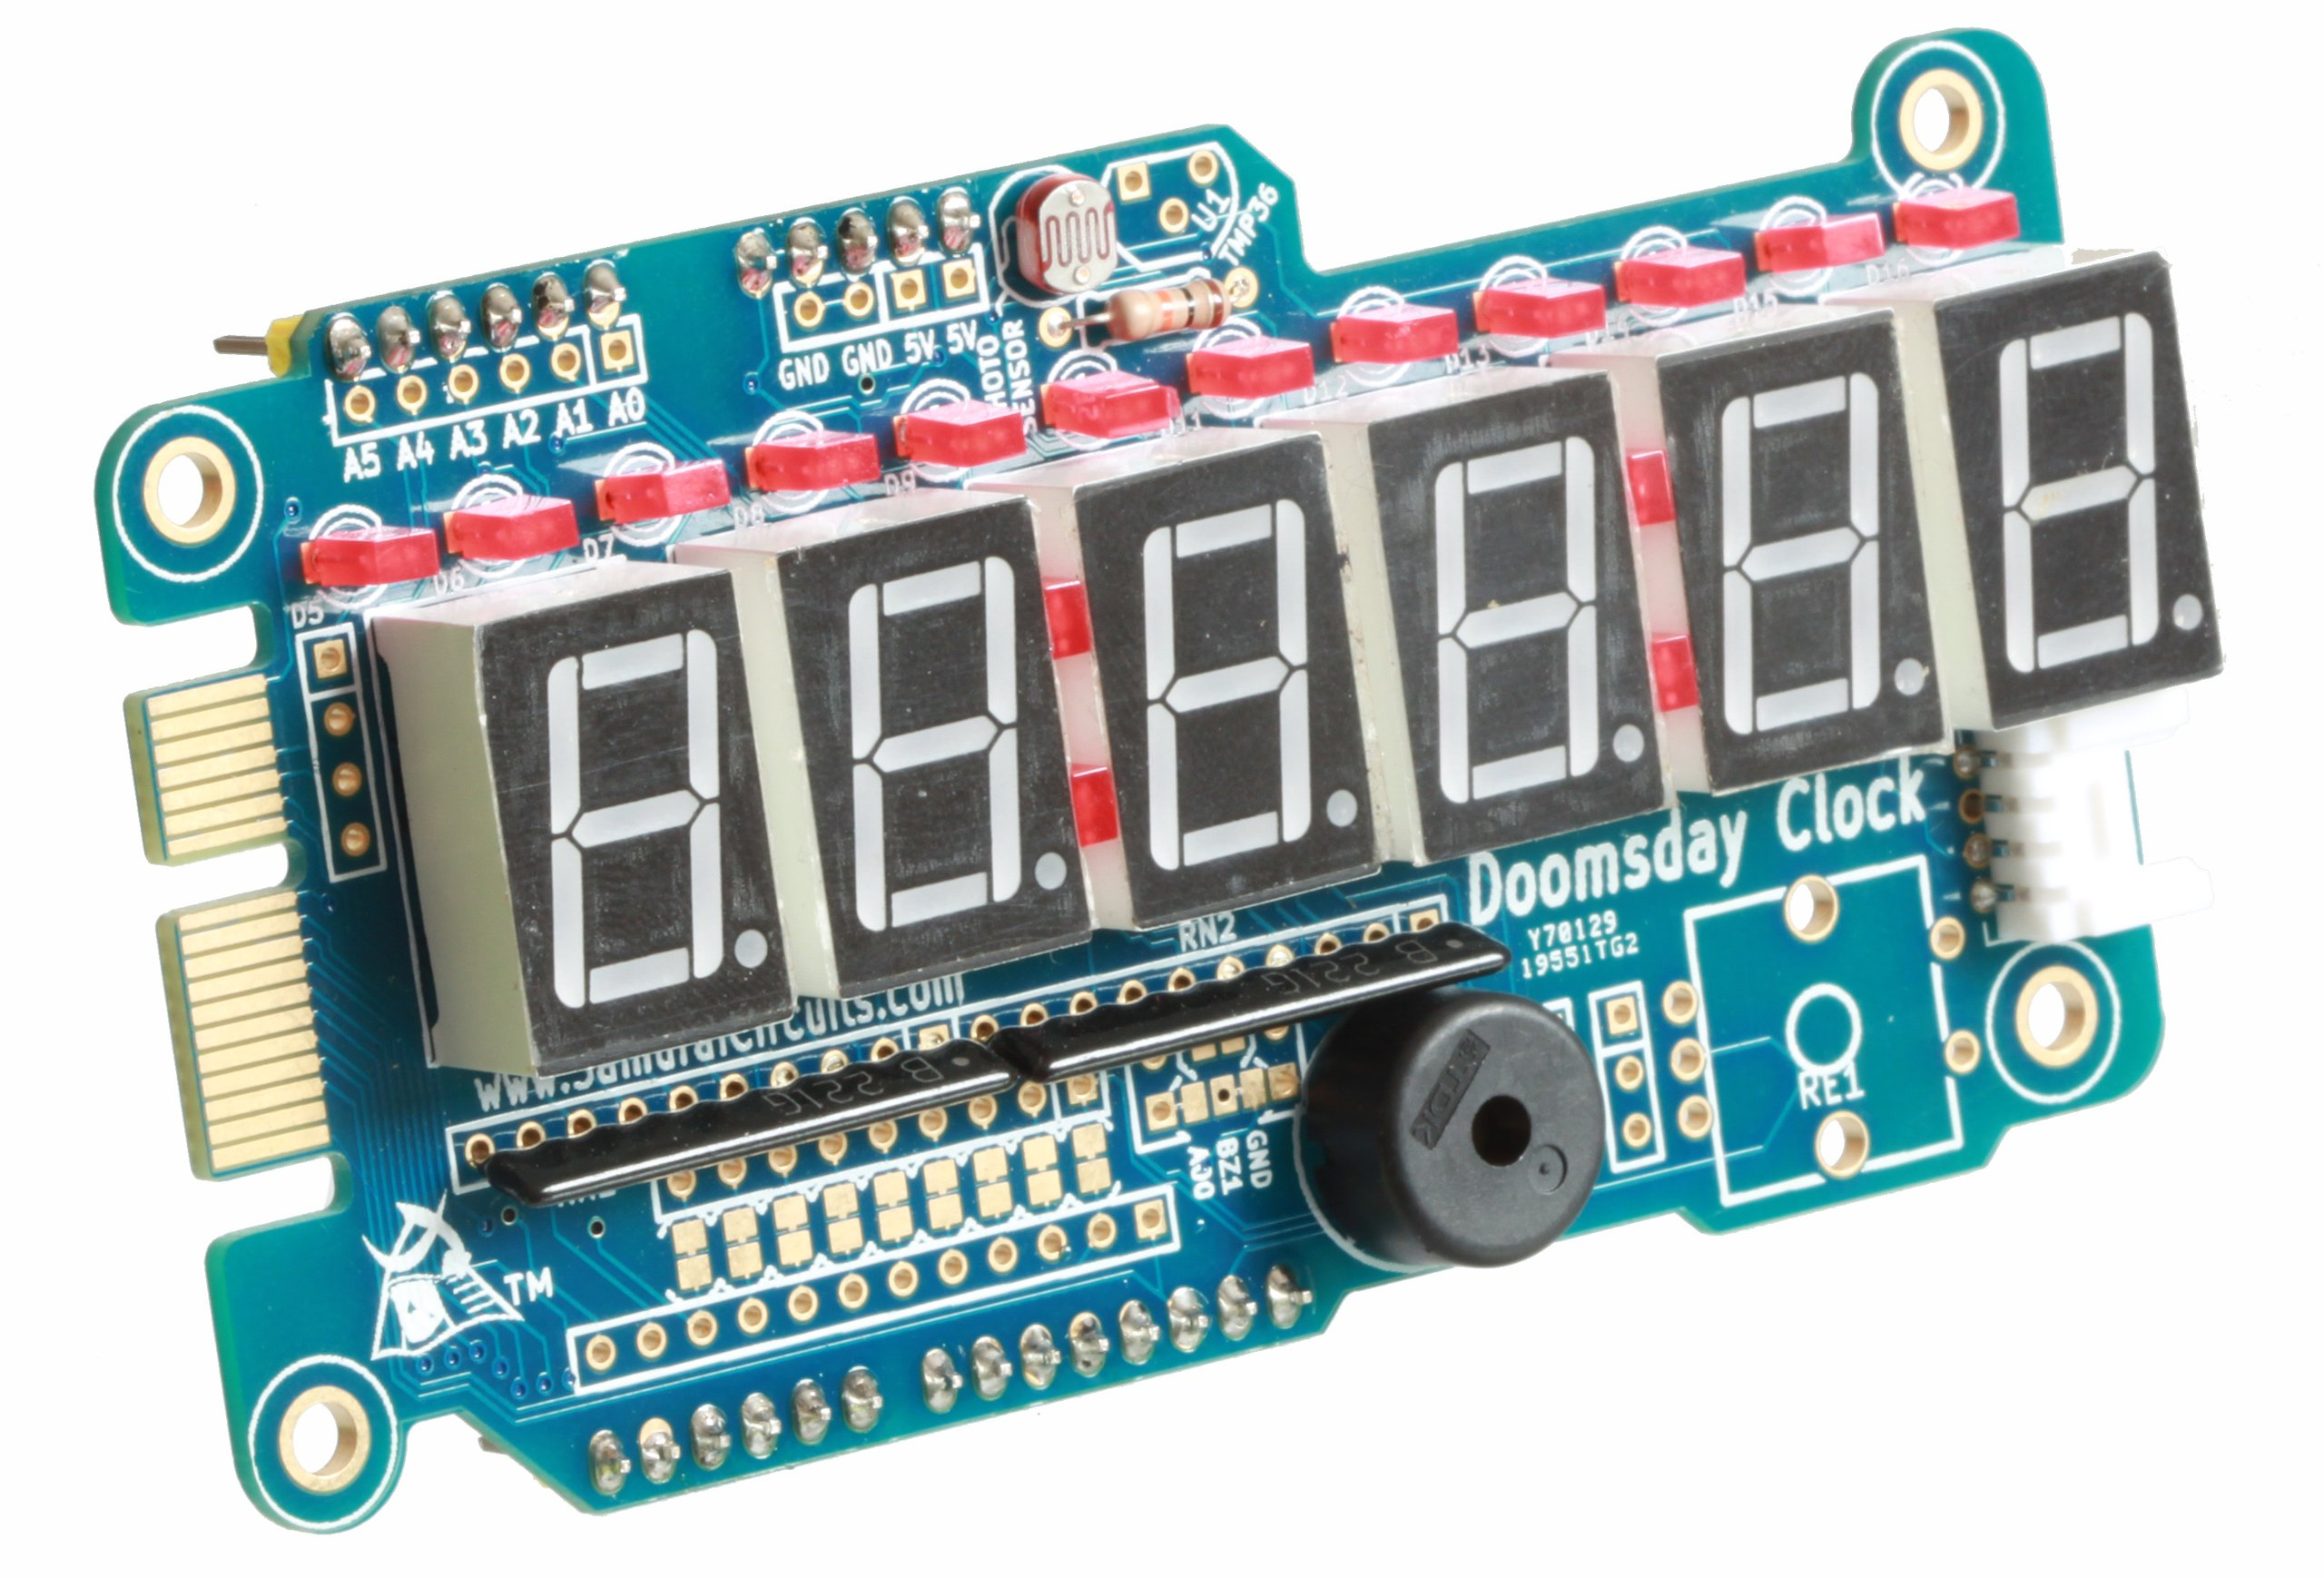 Doomsday clock shield kit for arduino from tullyg on tindie